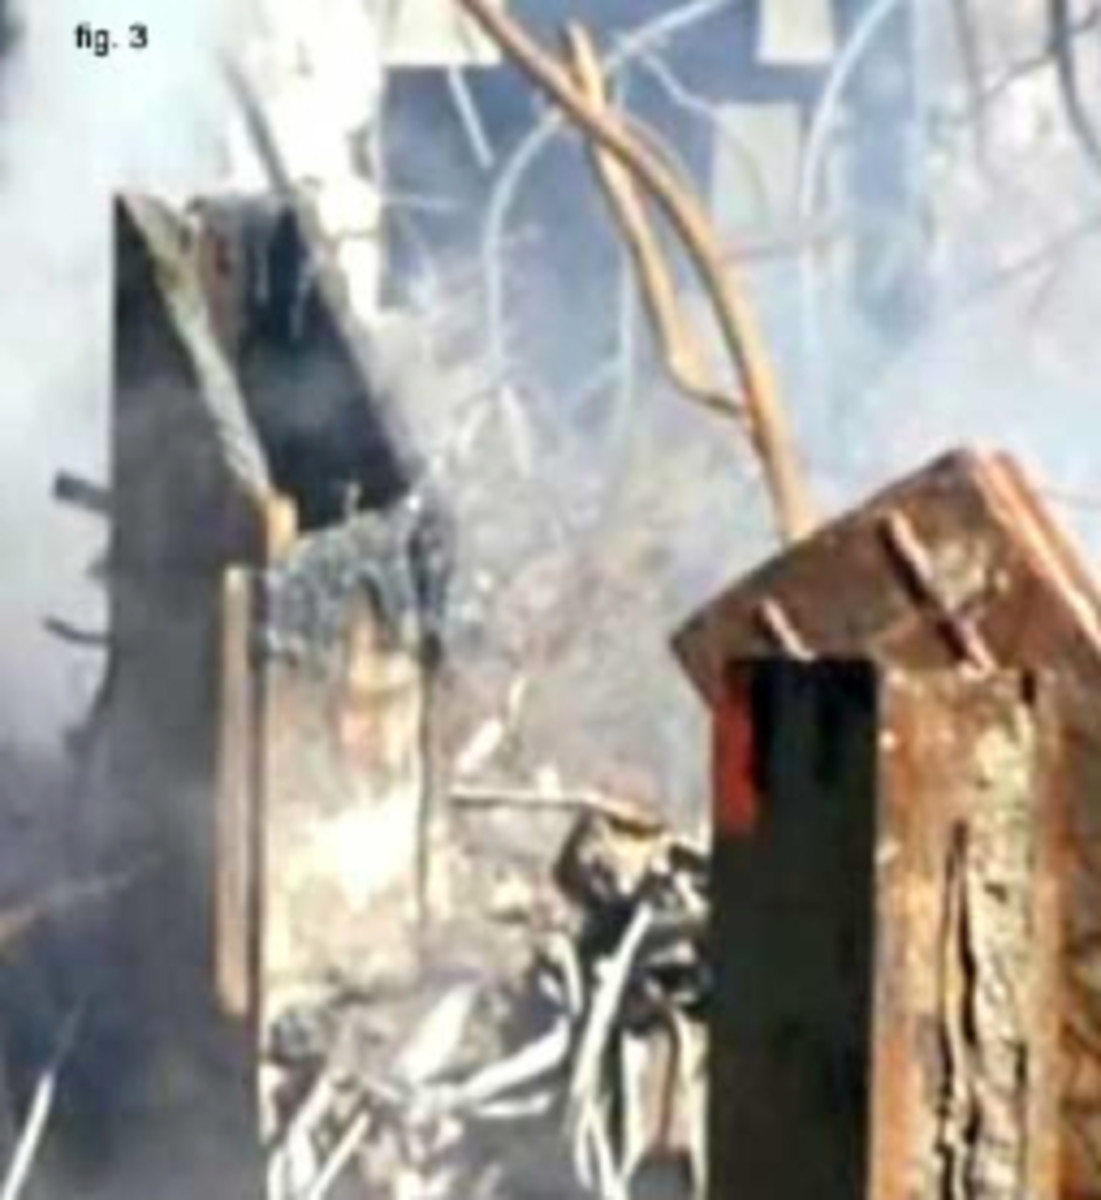 This photo in the ashes of one of the collapsed towers appeared shortly after the catastrophe. It shows a steel tube column cut at a 56 degree angle as if cut by an oxygen-acetylene torch. However, evidence showed thermite was involved.